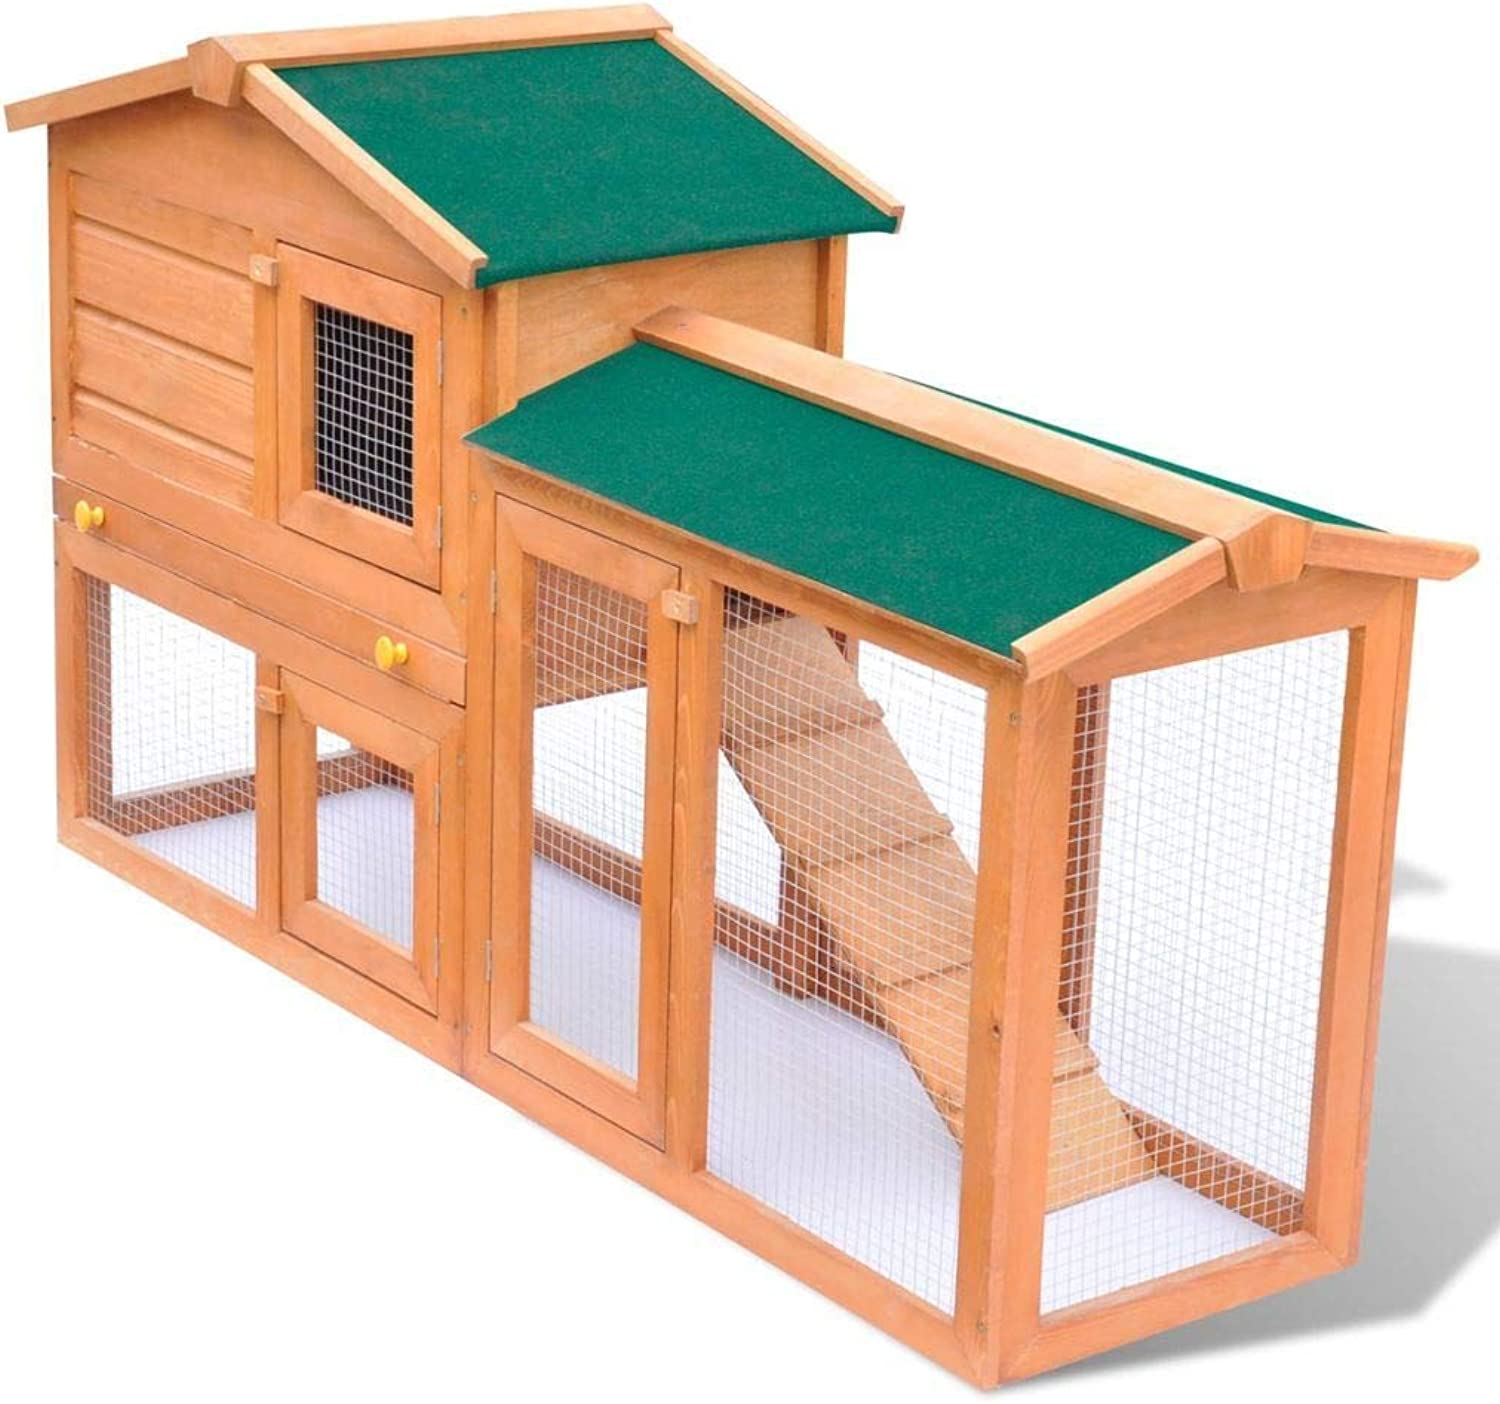 Generic  bit Hutch Hutch Small abbit Animal House Small Carrier Coop Wood al House Pet C Outdoor Large Rabbit Carri Pet Cage